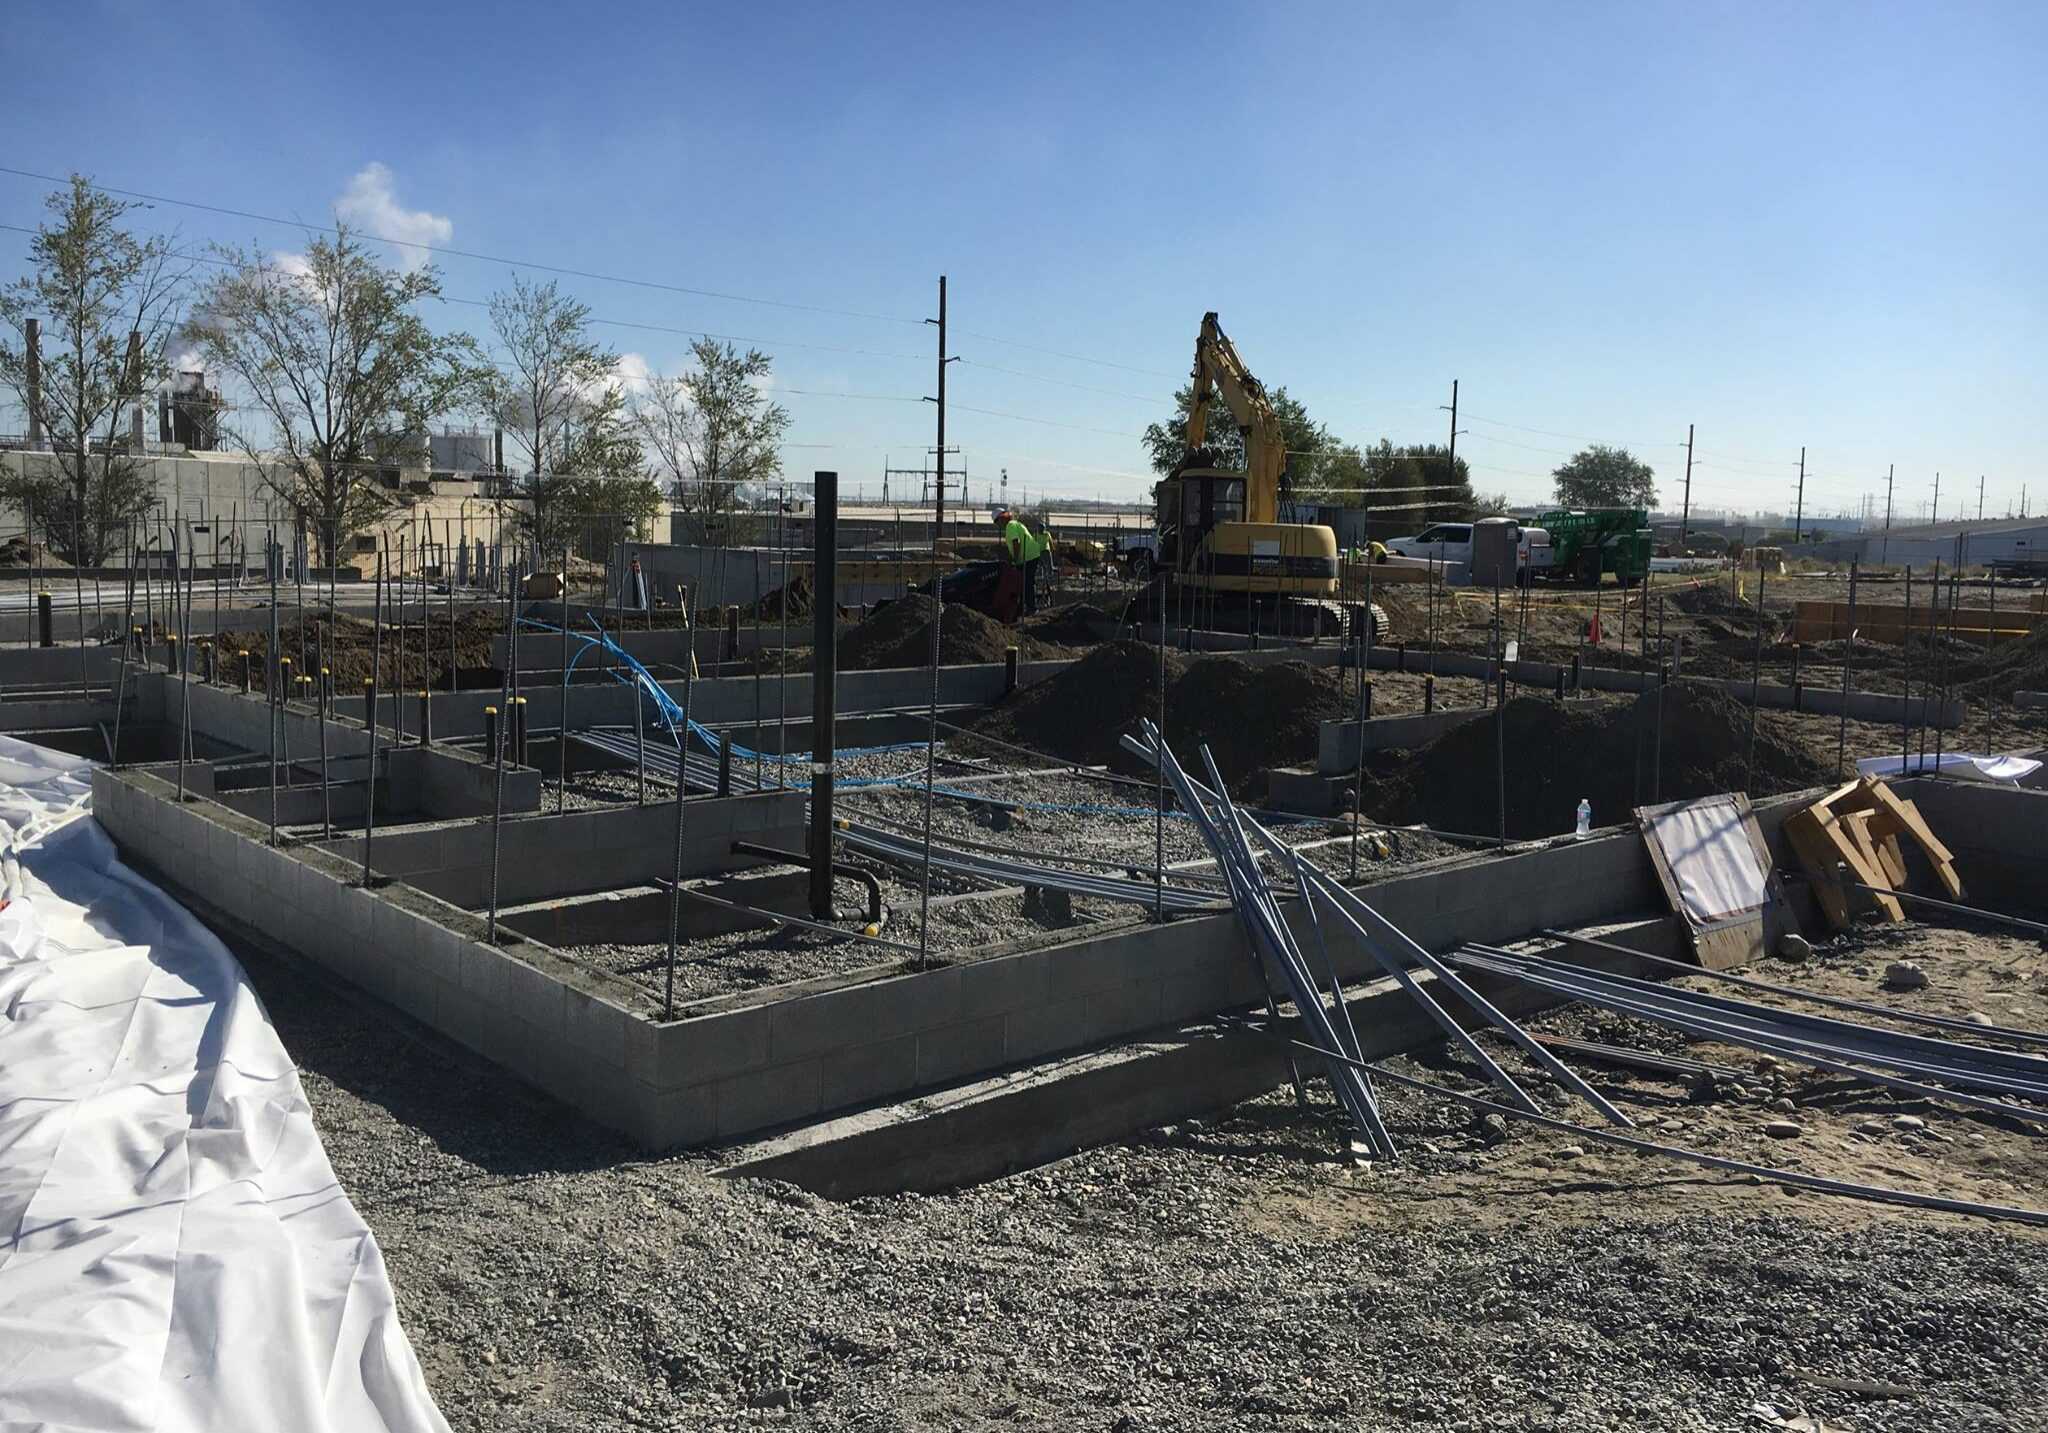 Pool & Recreation Center construction laying the foundation and pouring concrete.